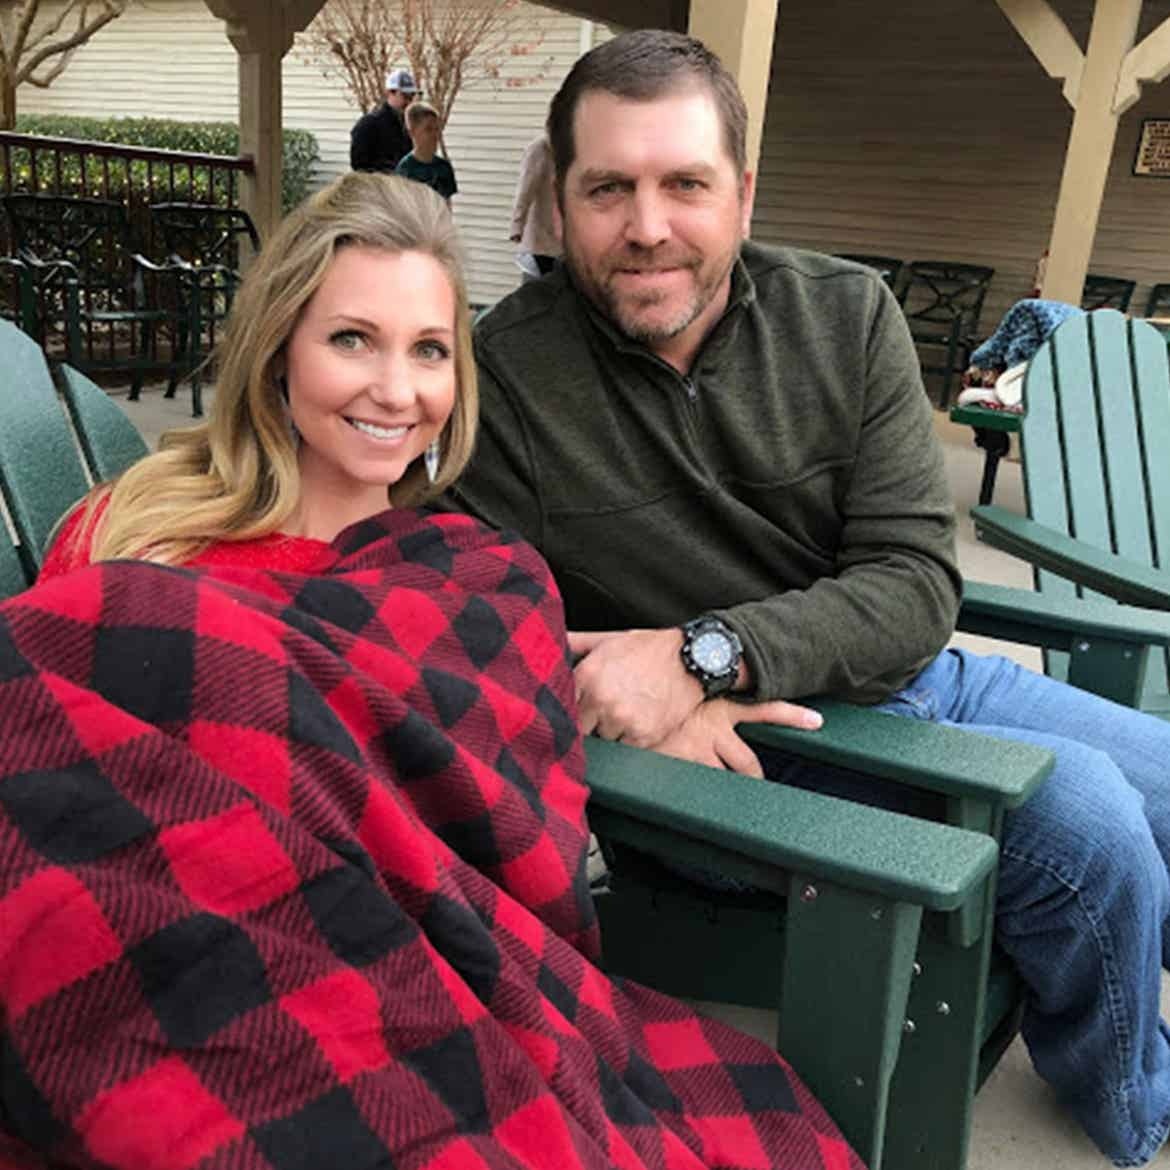 Author, Amanda Nall (left) sits under a cozy festive throw blanket with her husband outdoors.